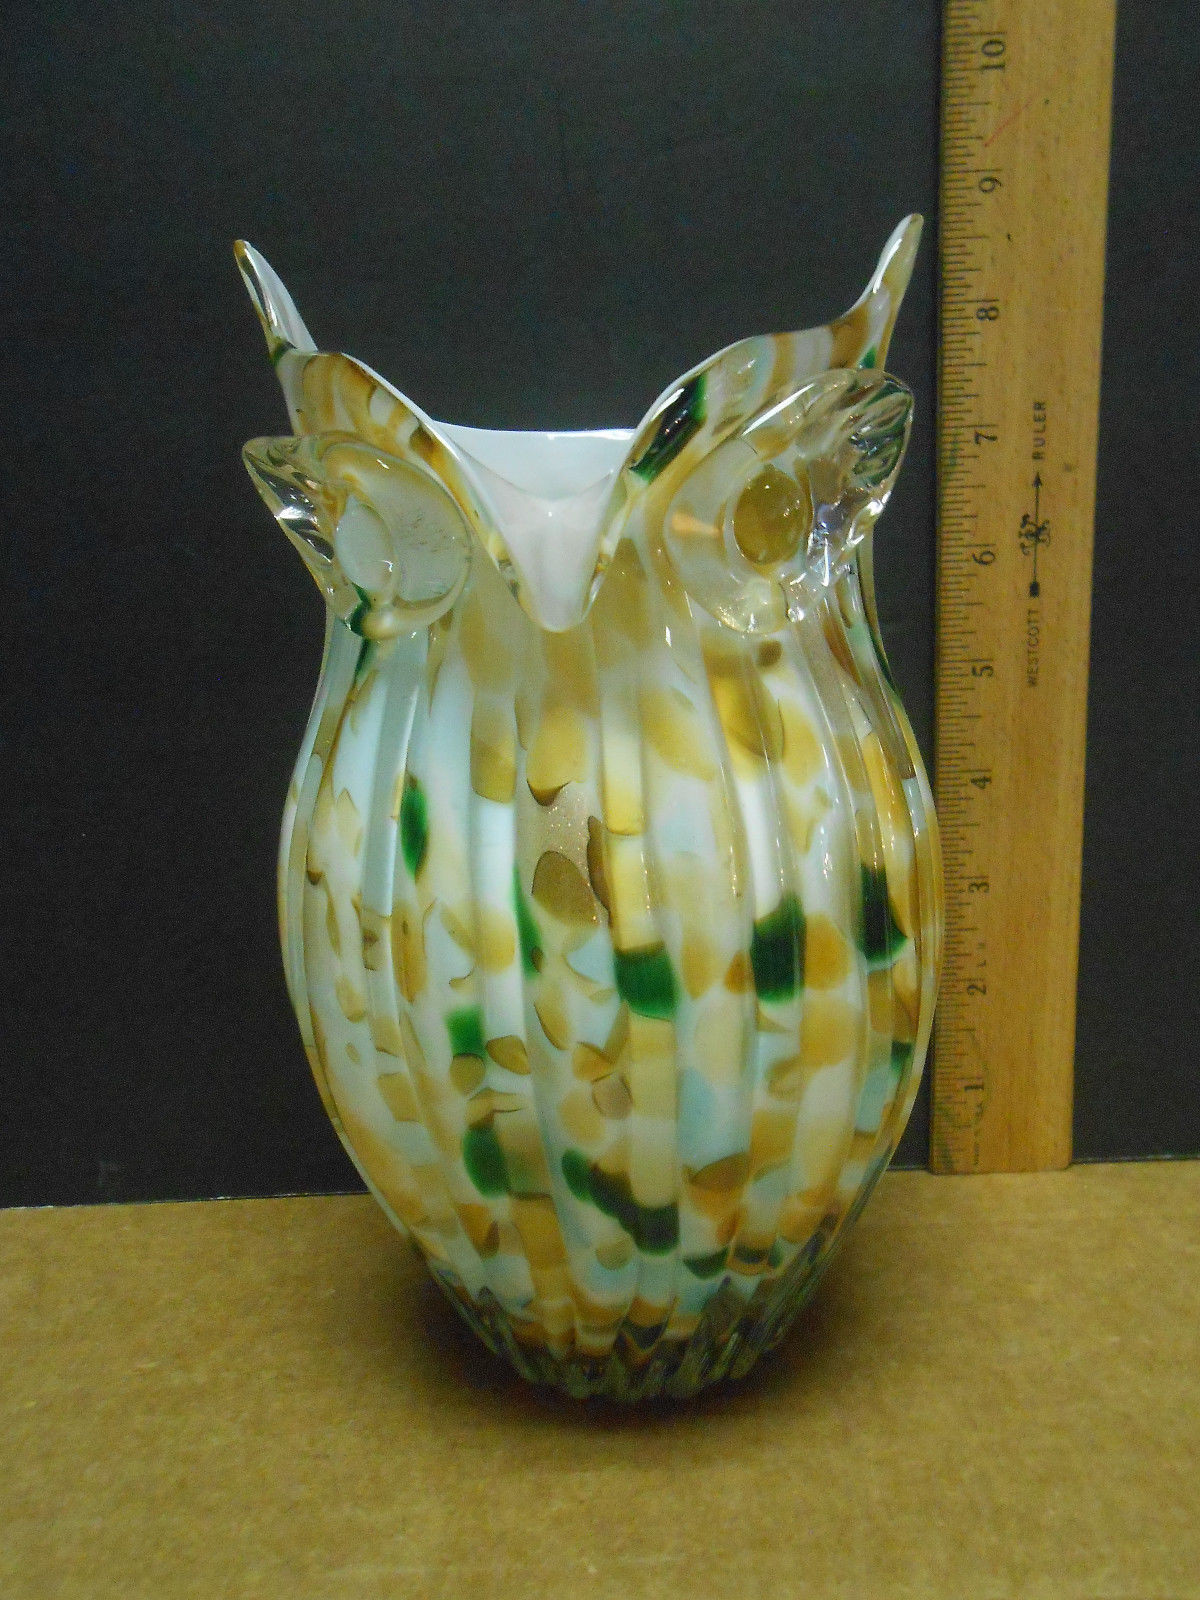 vidi glass naples vase of exquisite hand made glass owl vase murano style 8 5 tall a15 61 for exquisite hand made glass owl vase murano style 8 5 tall 1 of 5only 1 available exquisite hand made glass owl vase